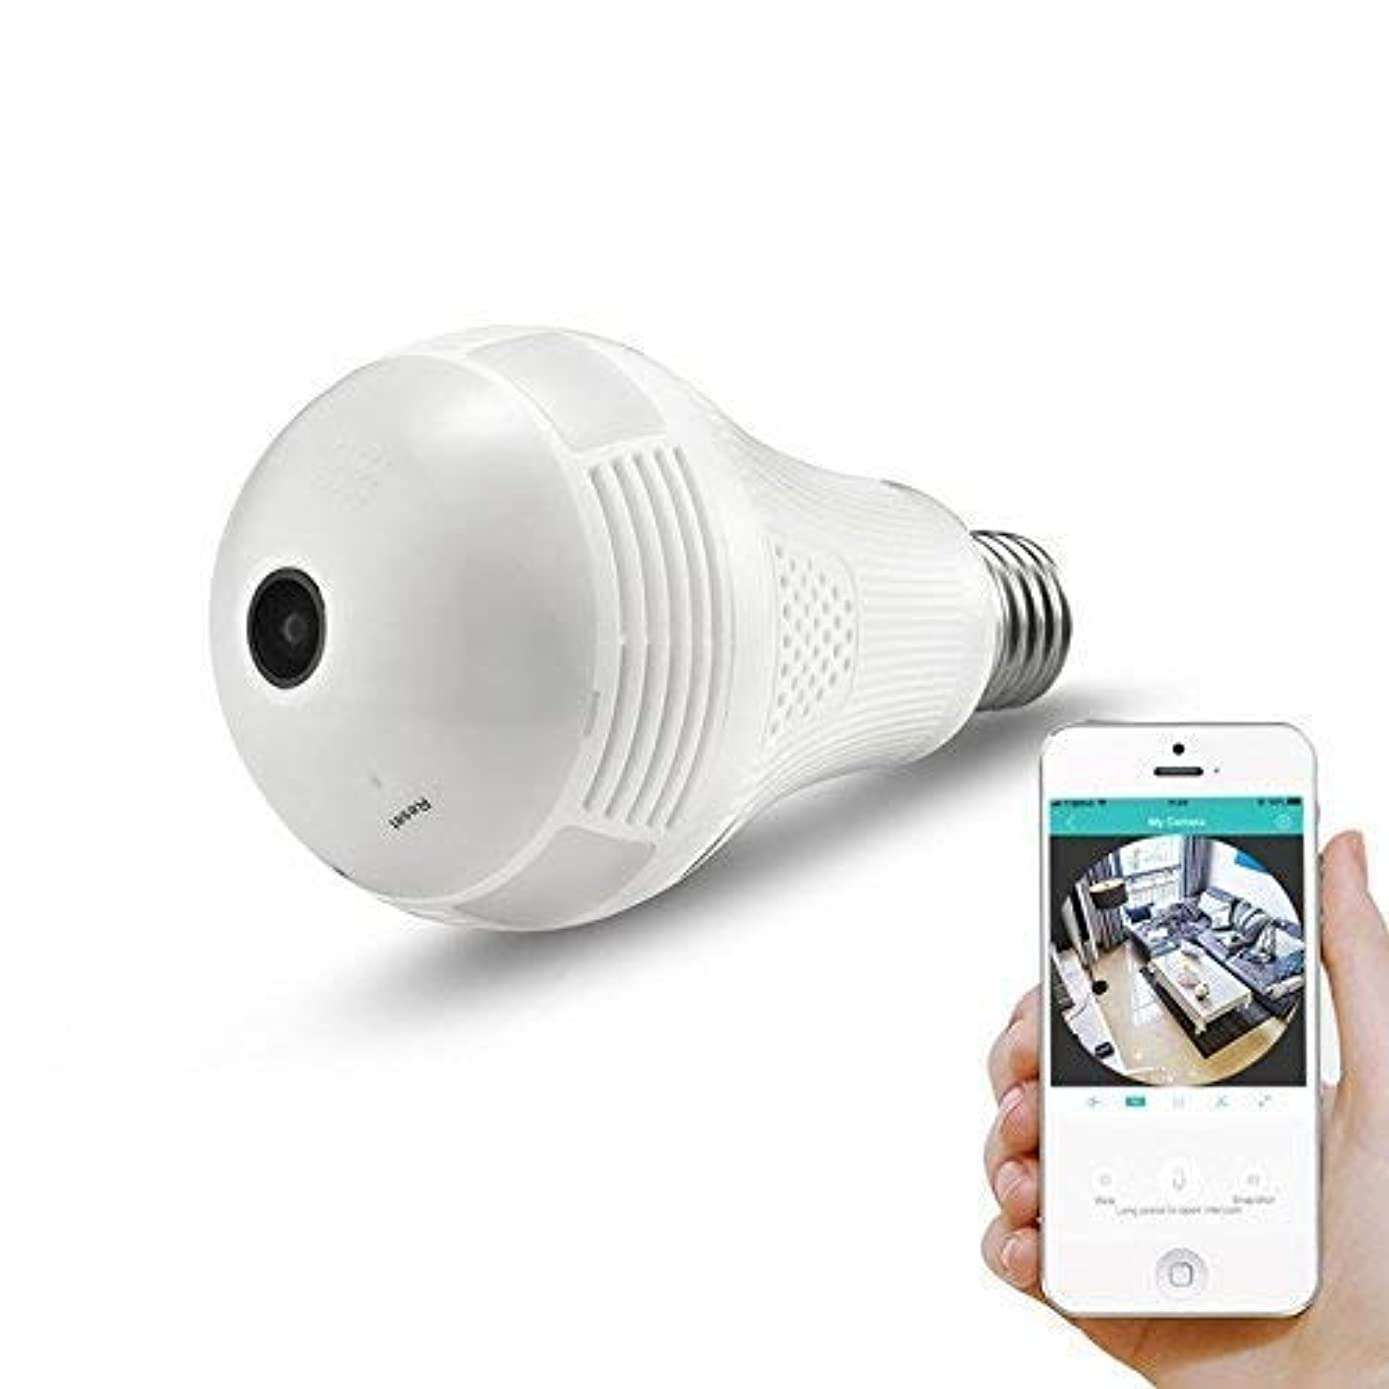 360° Panoramic View WiFi IP Bulb Camera with FishEye Lens 360 Degree 3D VR Panoramic View Home Security CCTV Camera Wirelss Security Camera (960P)